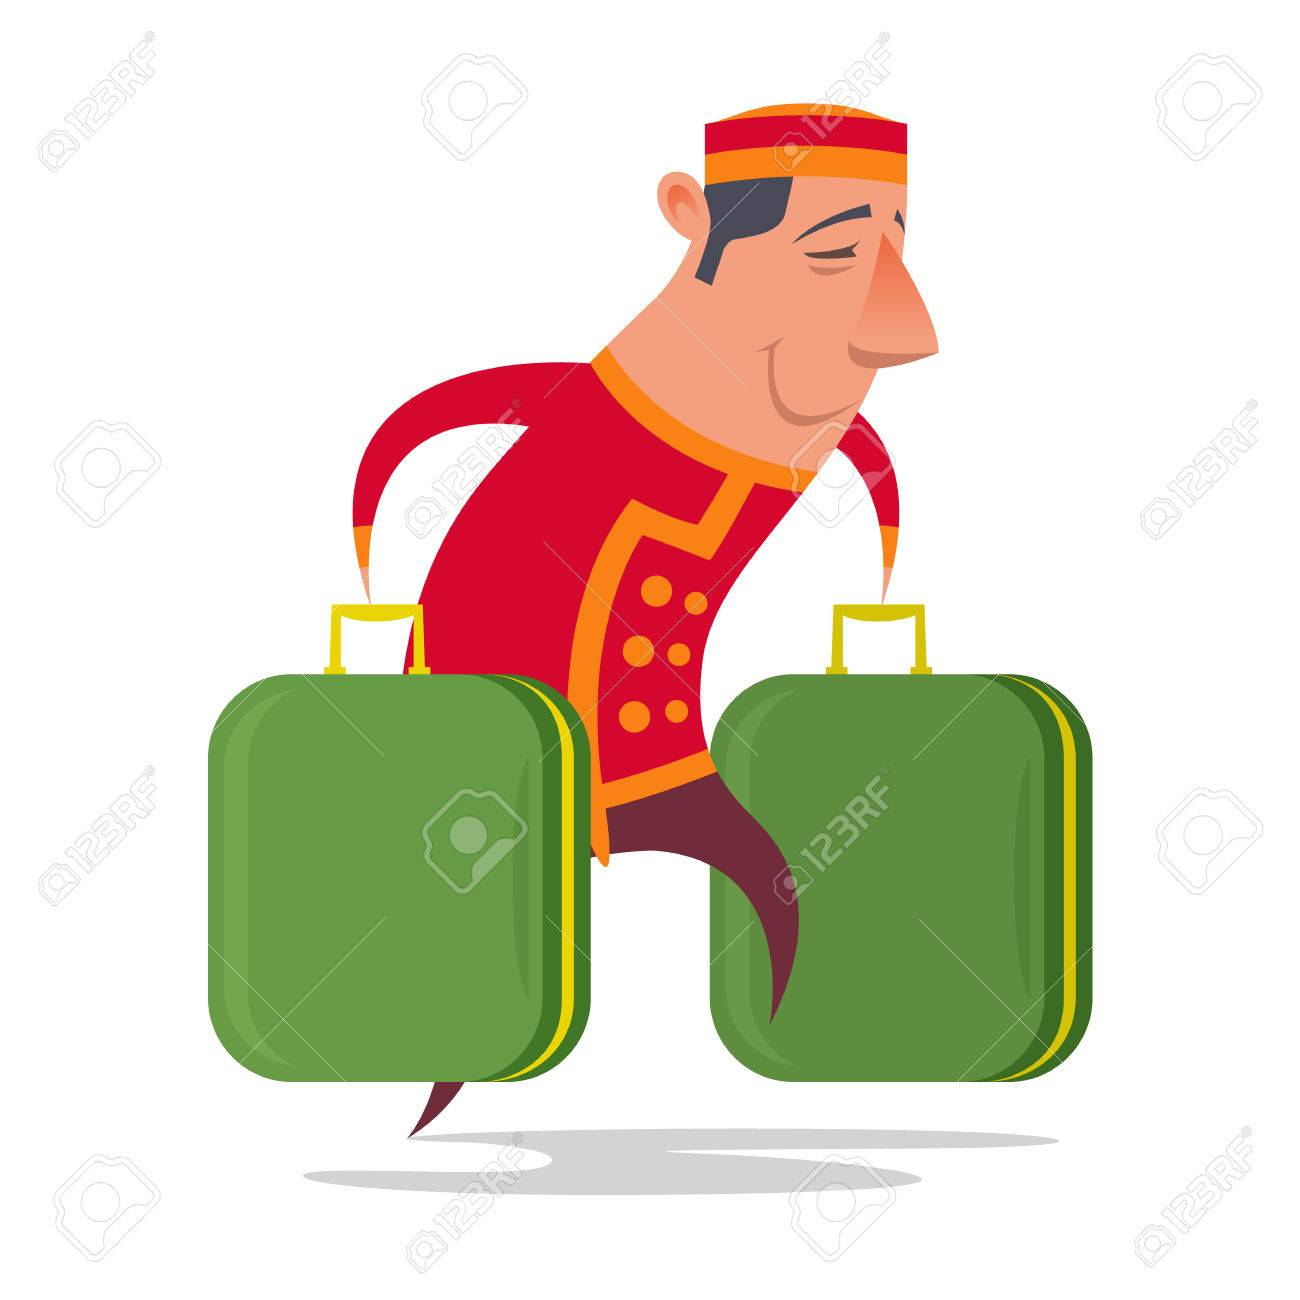 Free Luggage Clipart porter, Download Free Clip Art on Owips.com.